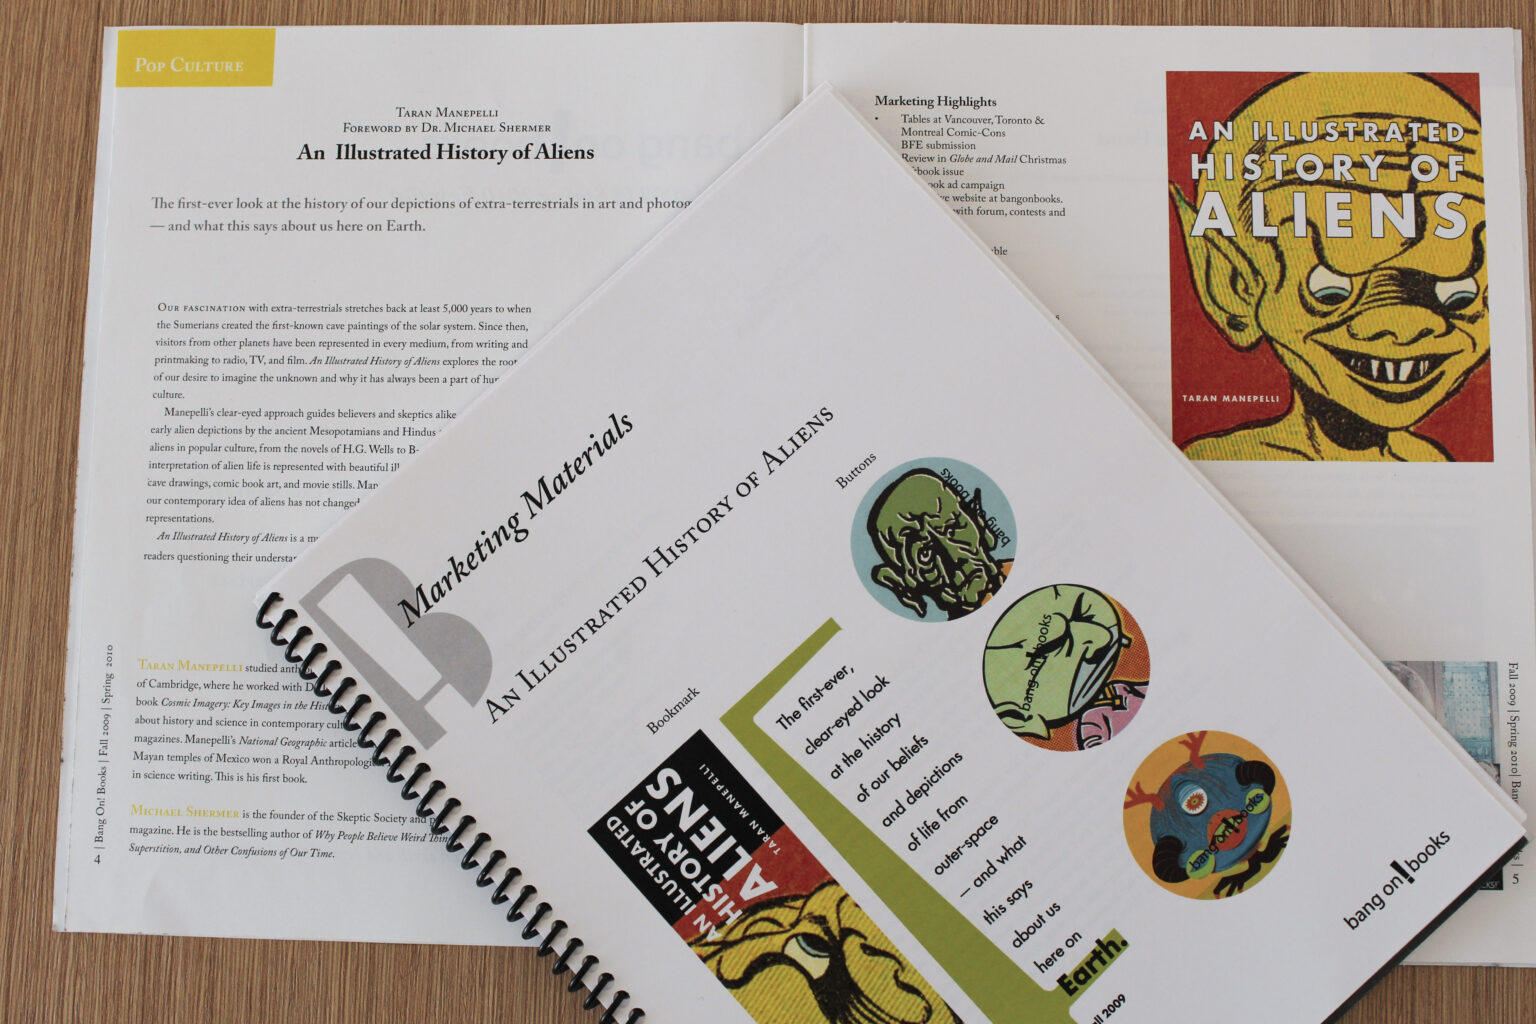 Bang On! Books project materials – An Illustrated History of Aliens tip sheet and marketing materials